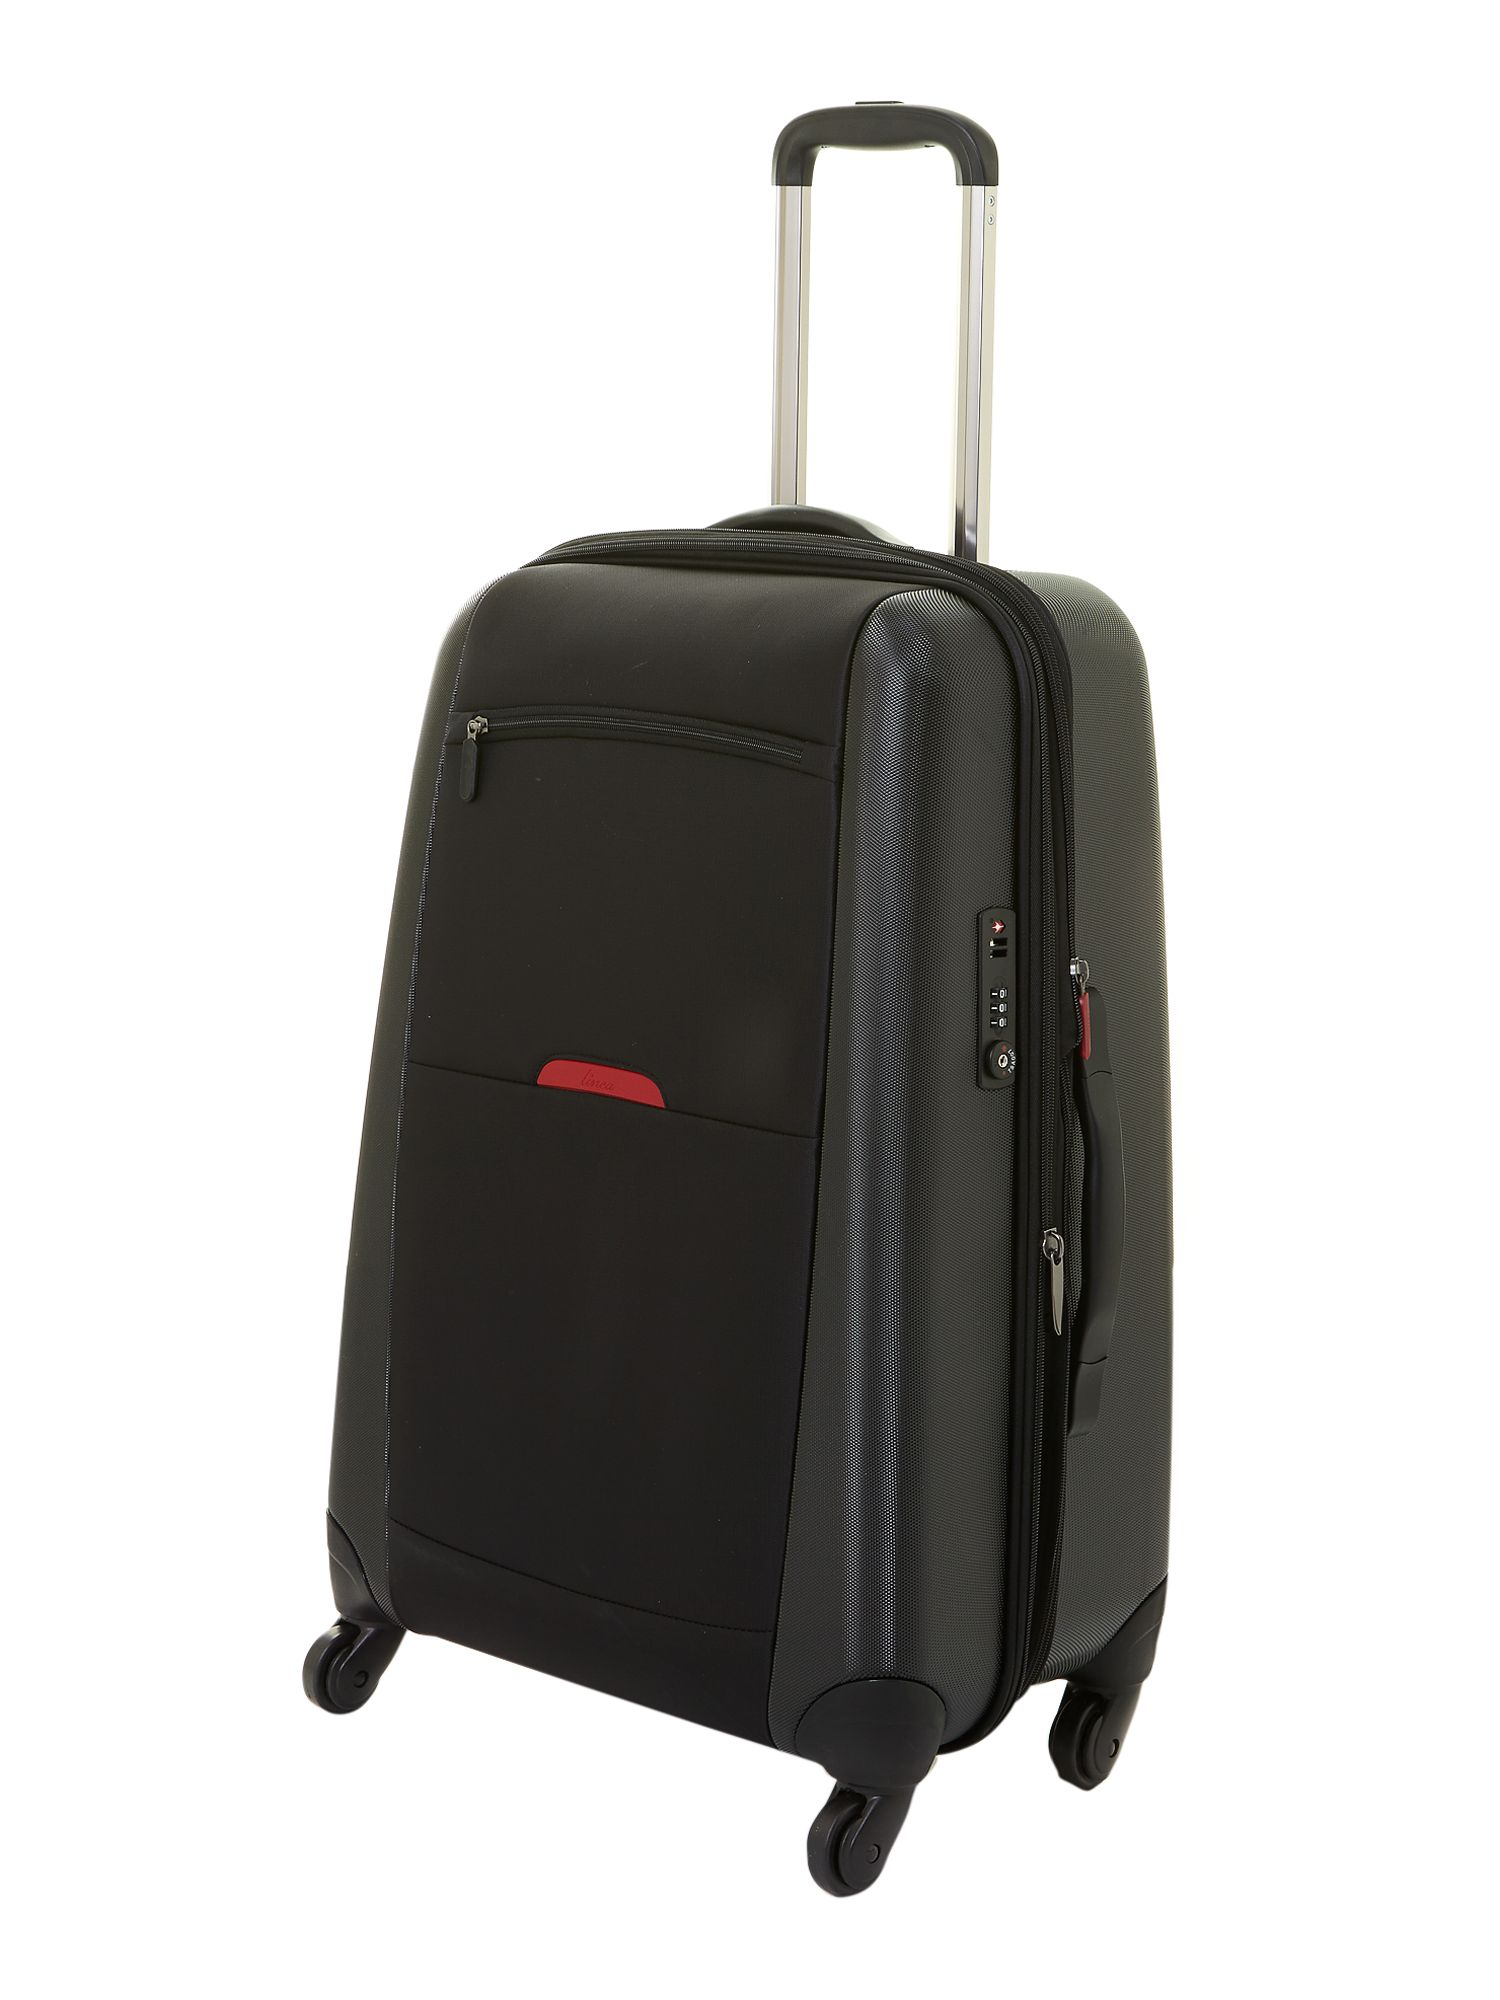 Hylite black 4-wheel medium suitcase